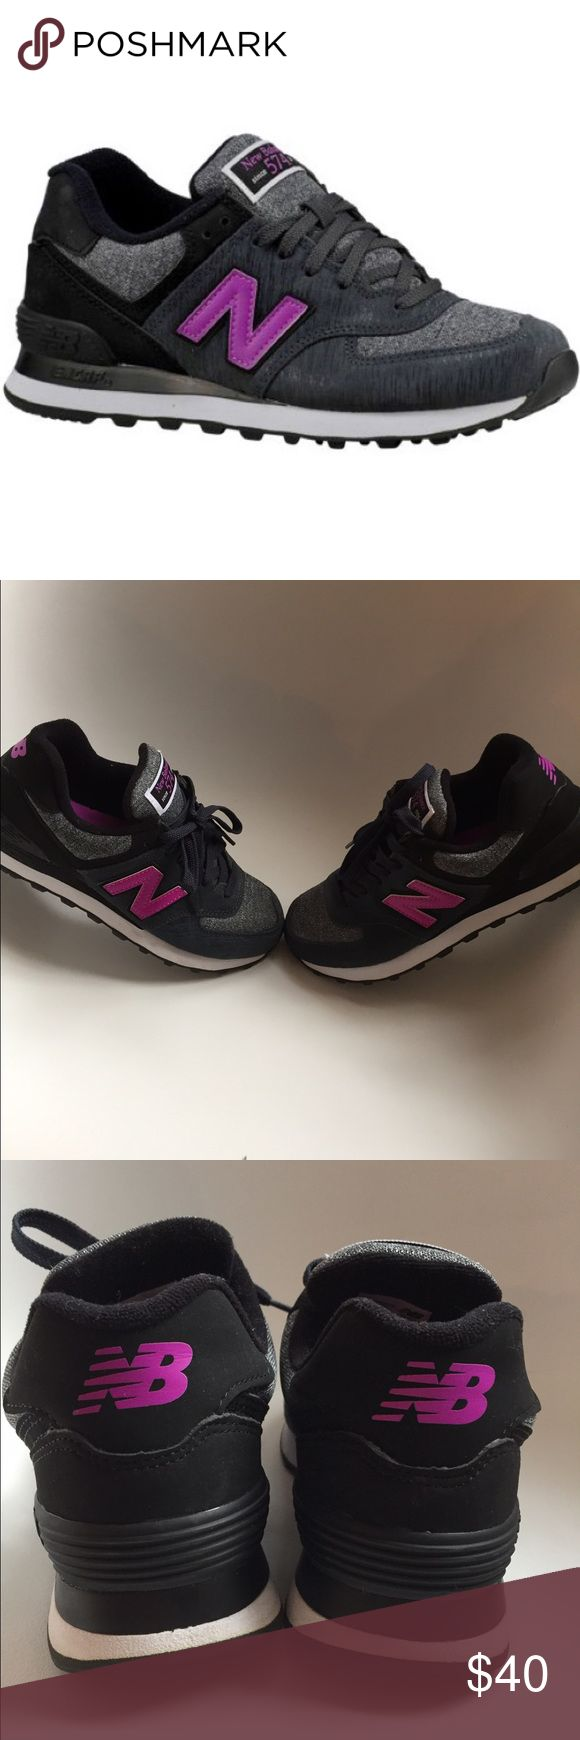 New Balance 574 Women's Sneakers Grey / Purple  worn only once New Balance 574's. Very cute and stylish  kicks! Smoke/ Pet Free Home. size 6.5 Women's/ 37 European New Balance Shoes Sneakers